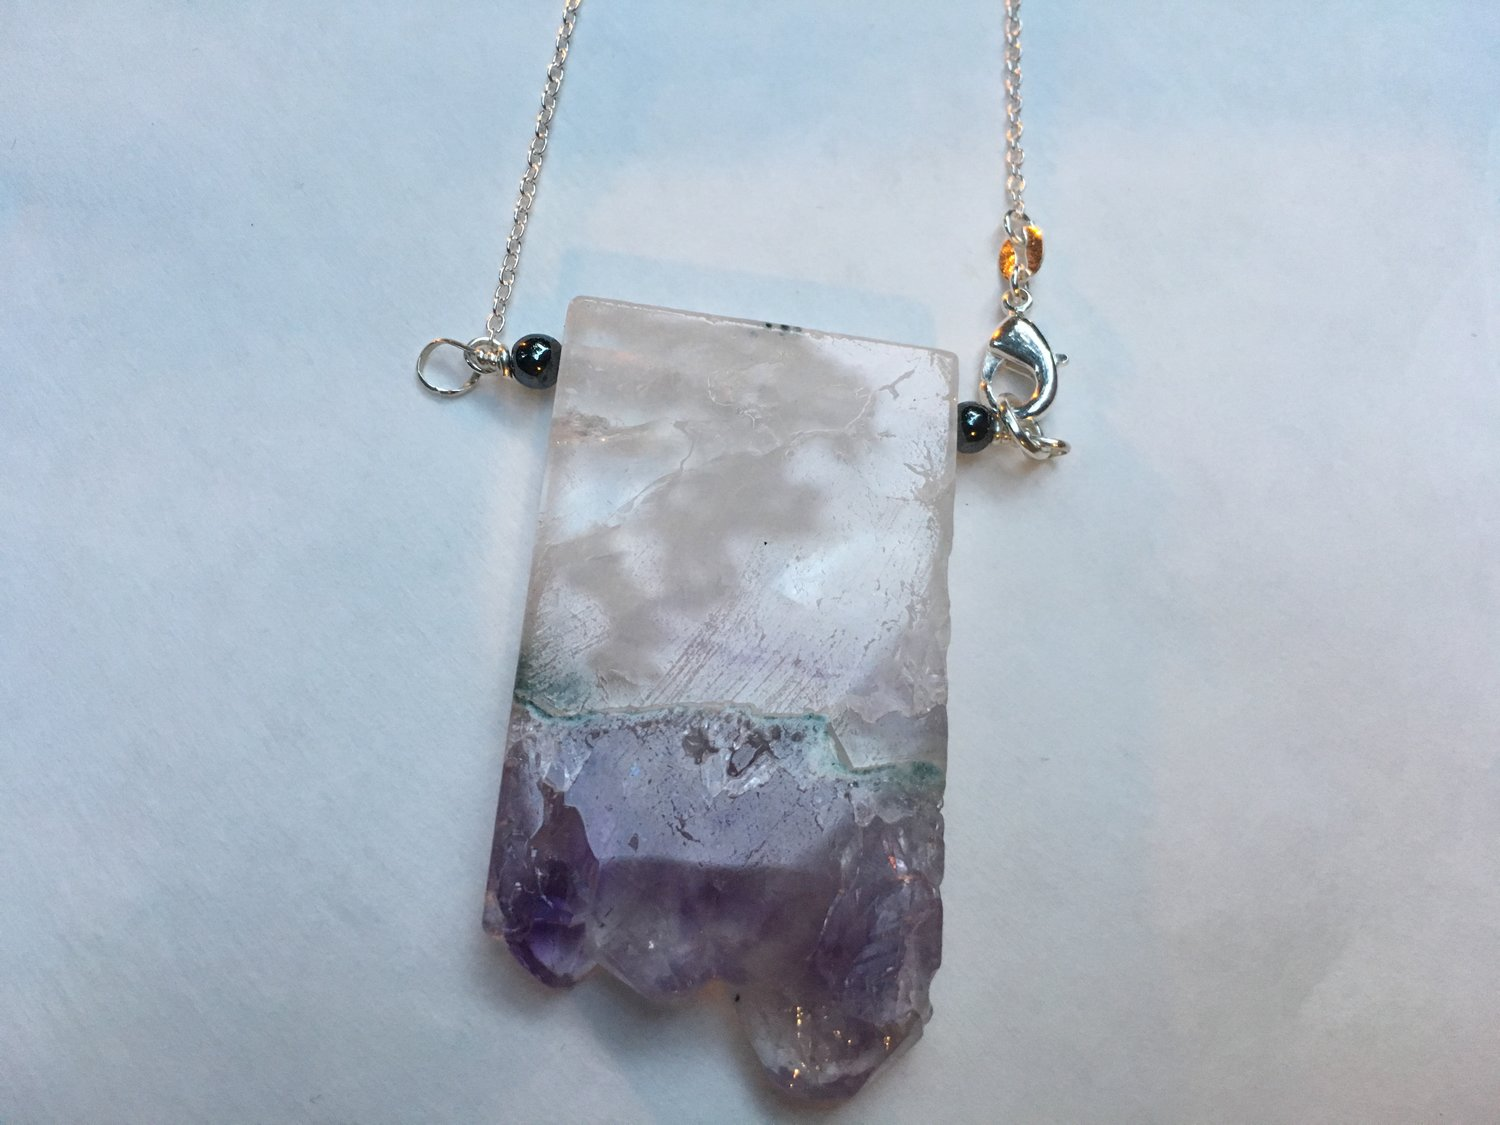 Amethyst Druzy Slice Pendant Necklace — The Celestine Collection